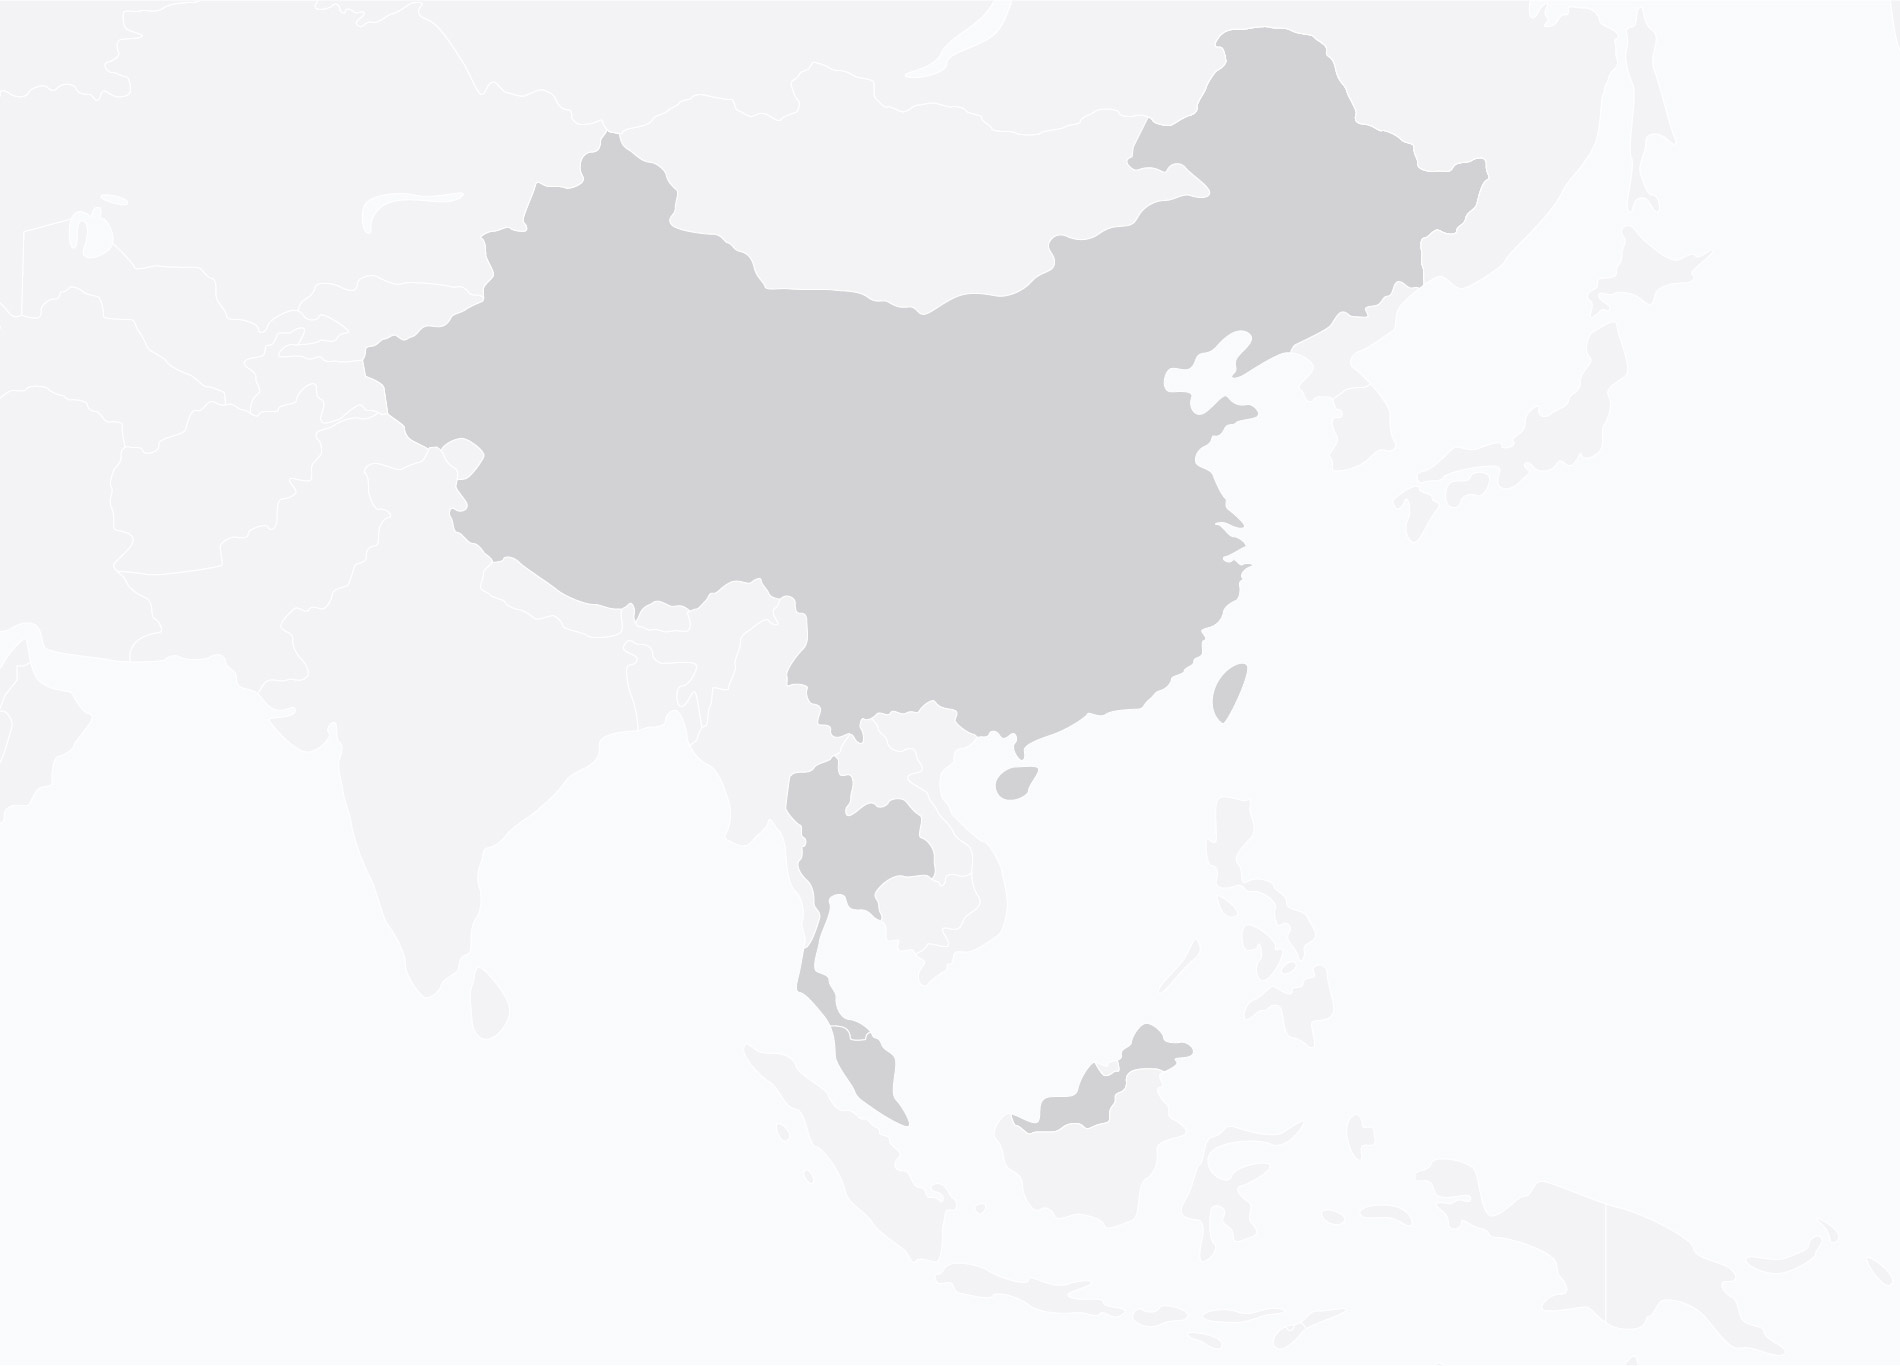 asia_map-01-01